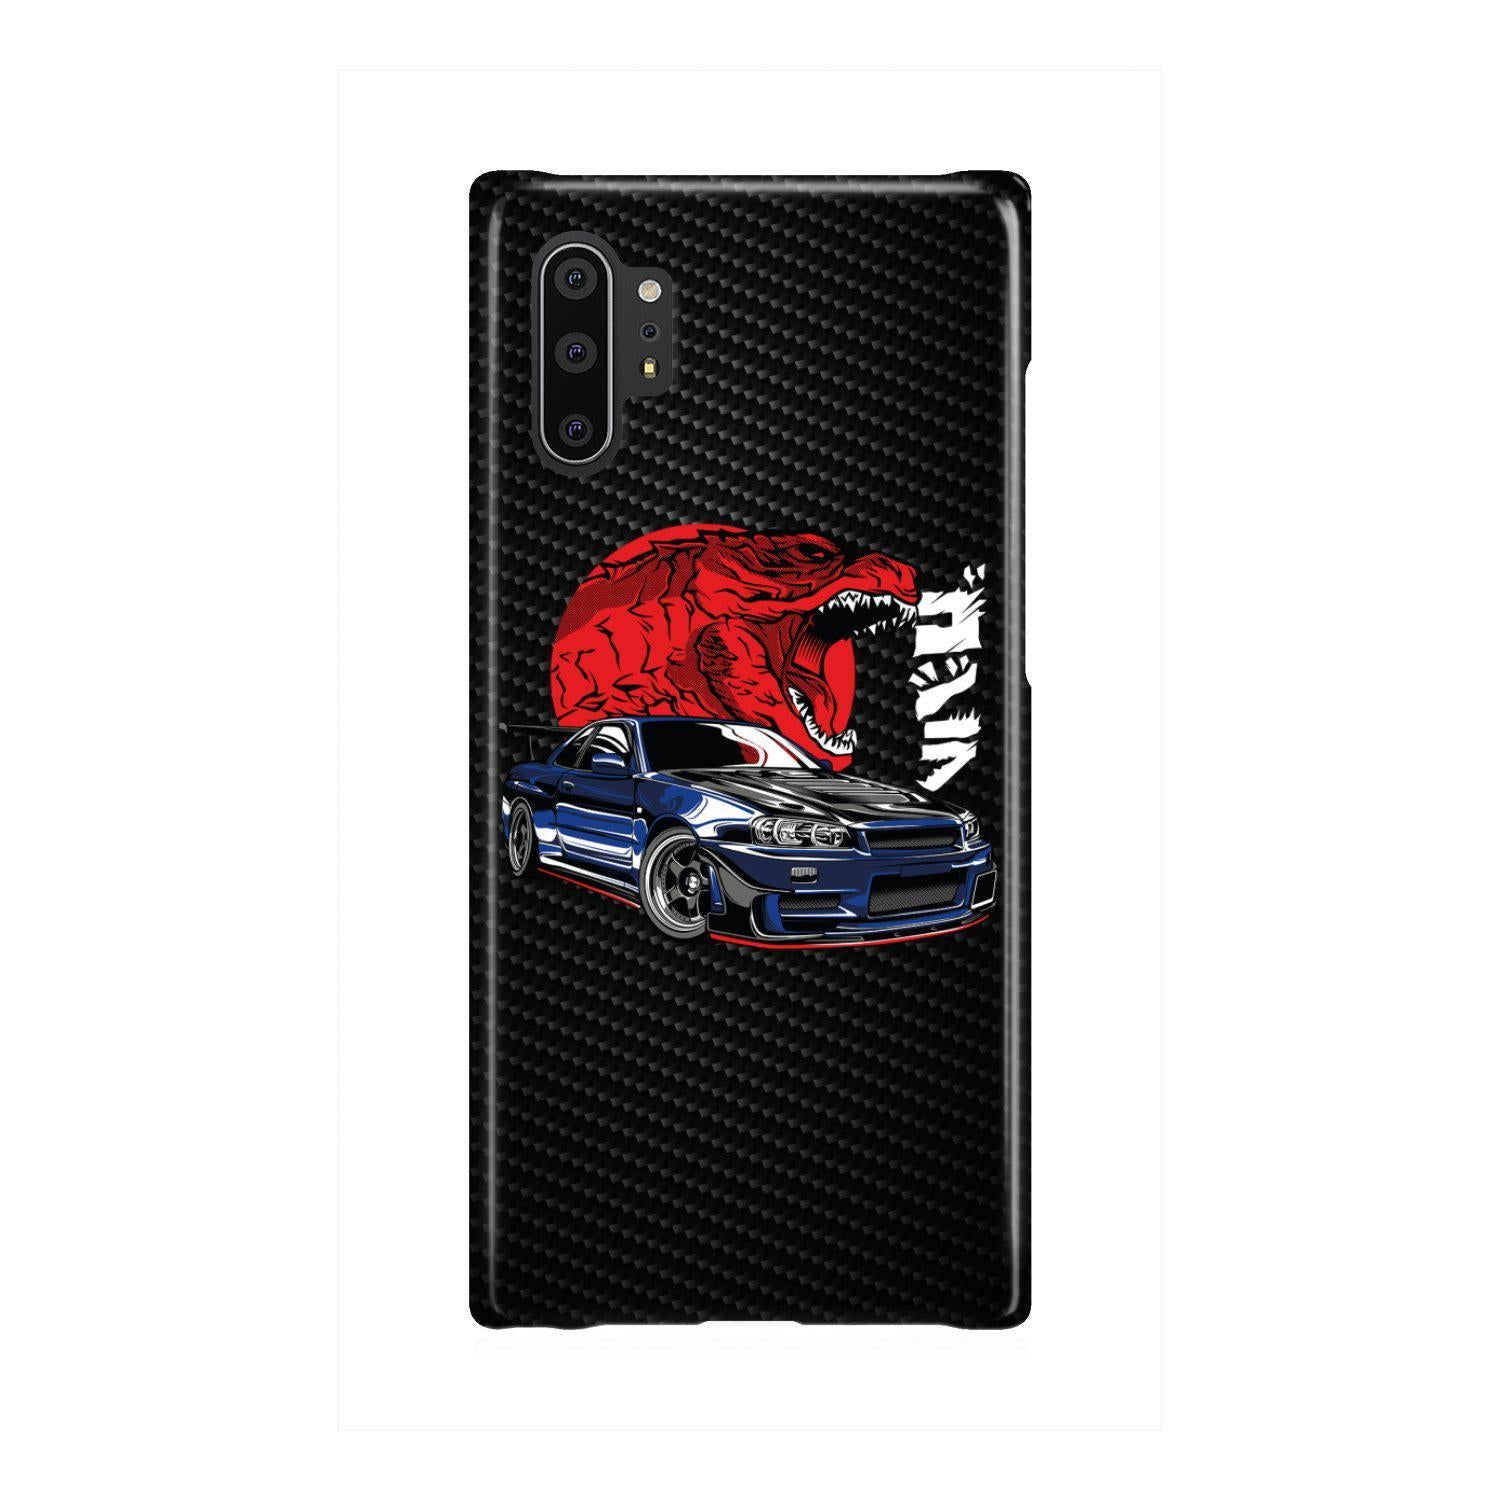 GTR R34 Godzilla - Snap Case - for Apple iPhone Models - TunerLifestyle